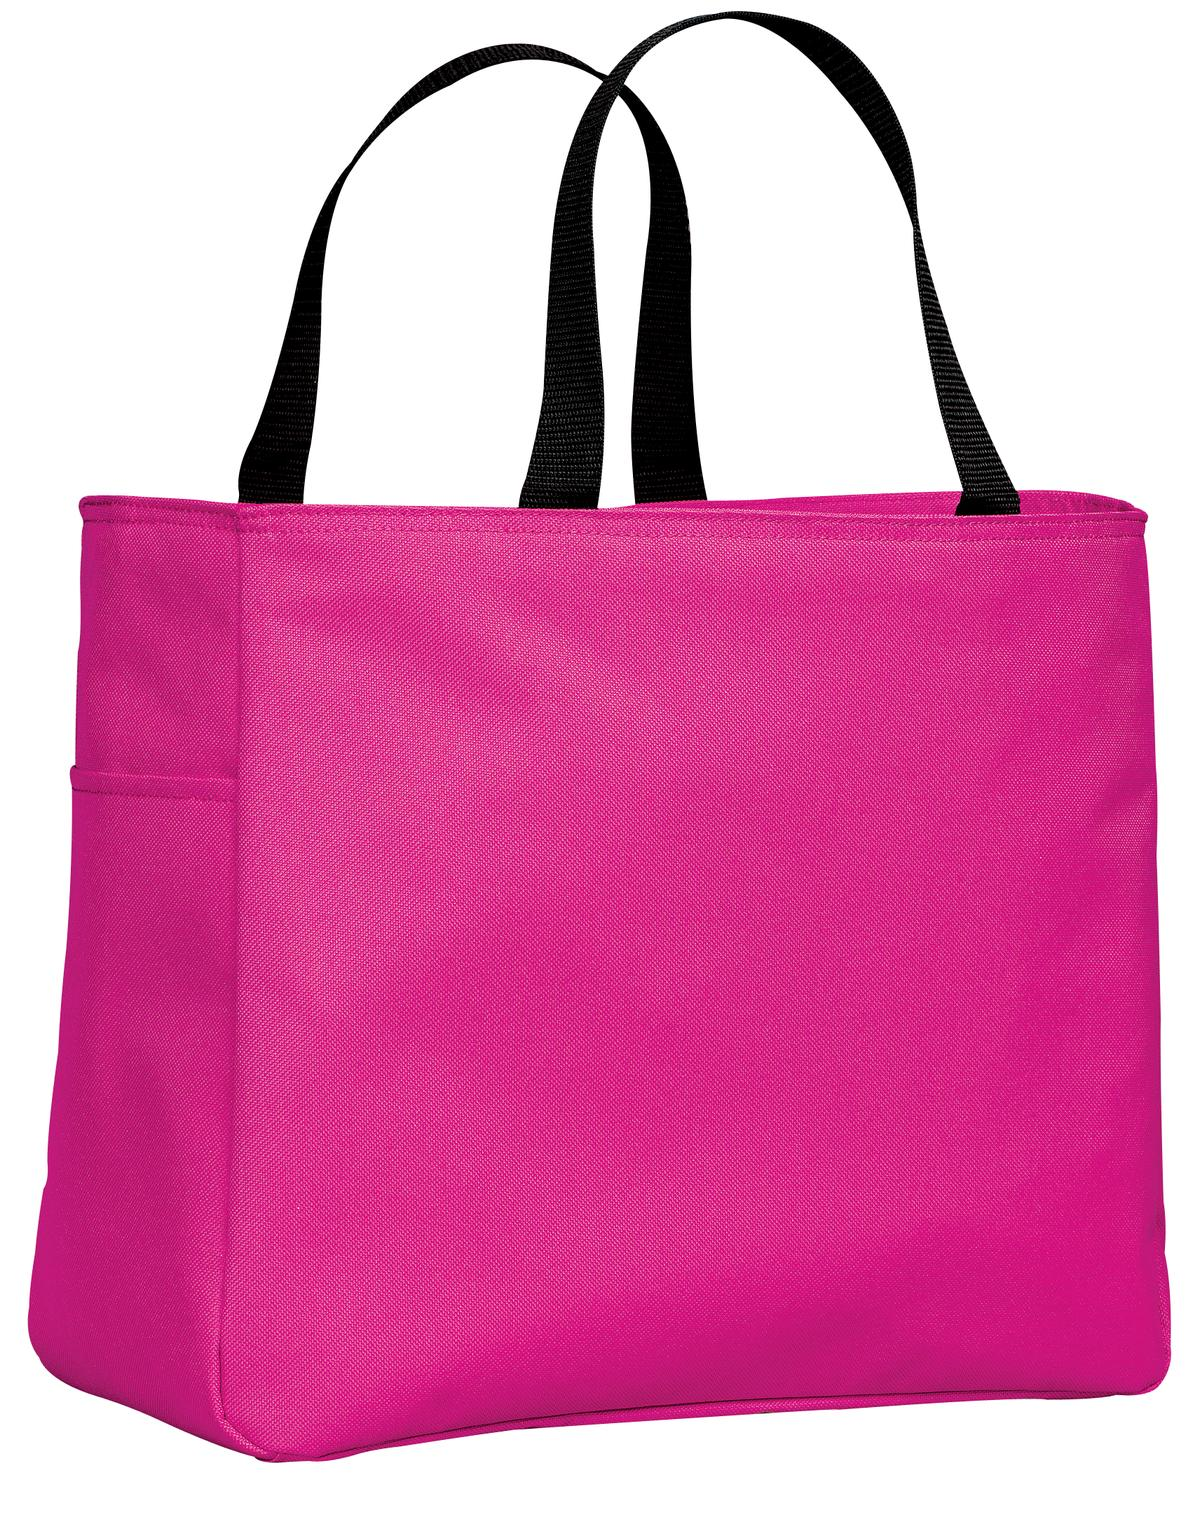 Port Authority ®  -  Essential Tote.  B0750 - Tropical Pink